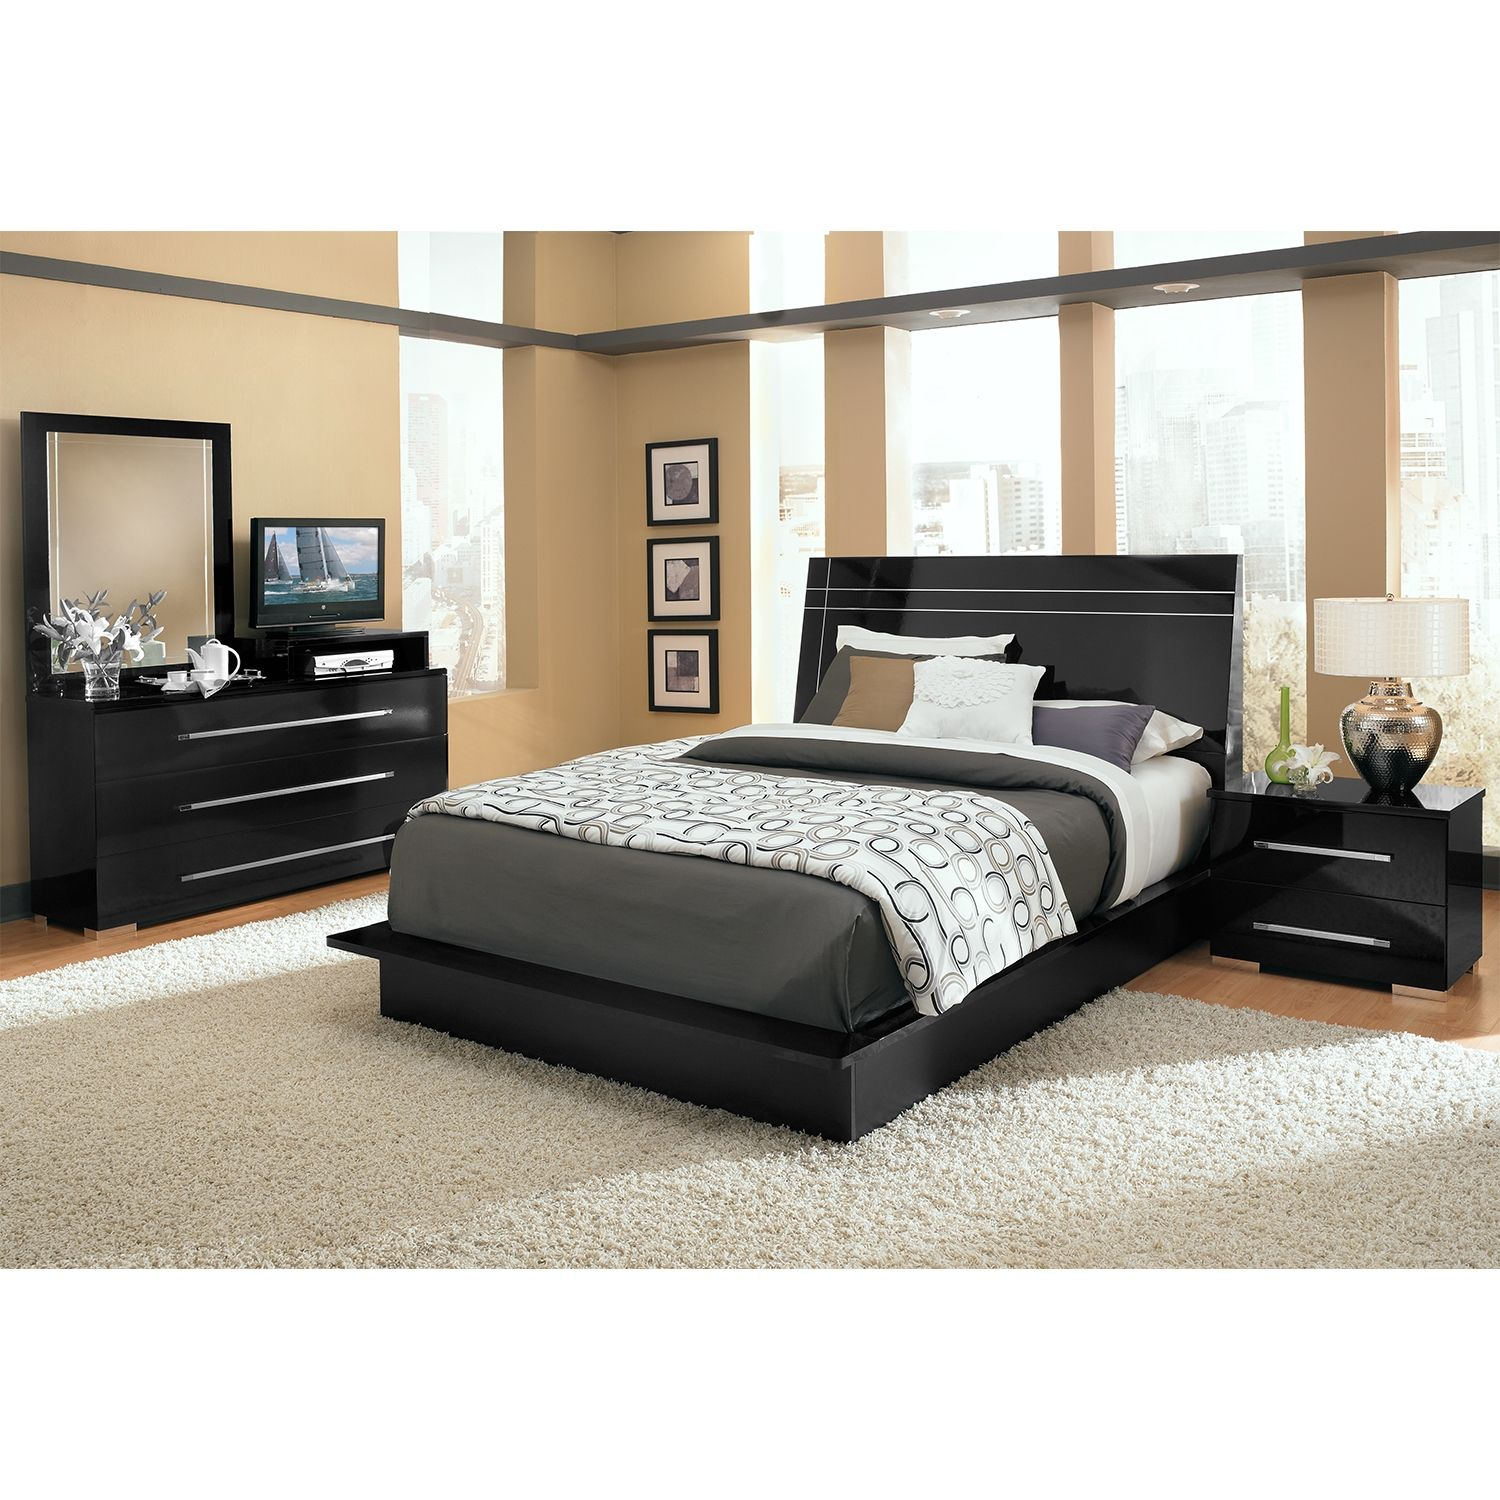 store turin queen lg modern in bed window m bedroom comfyco new sets bedrooms j black size at beds com open